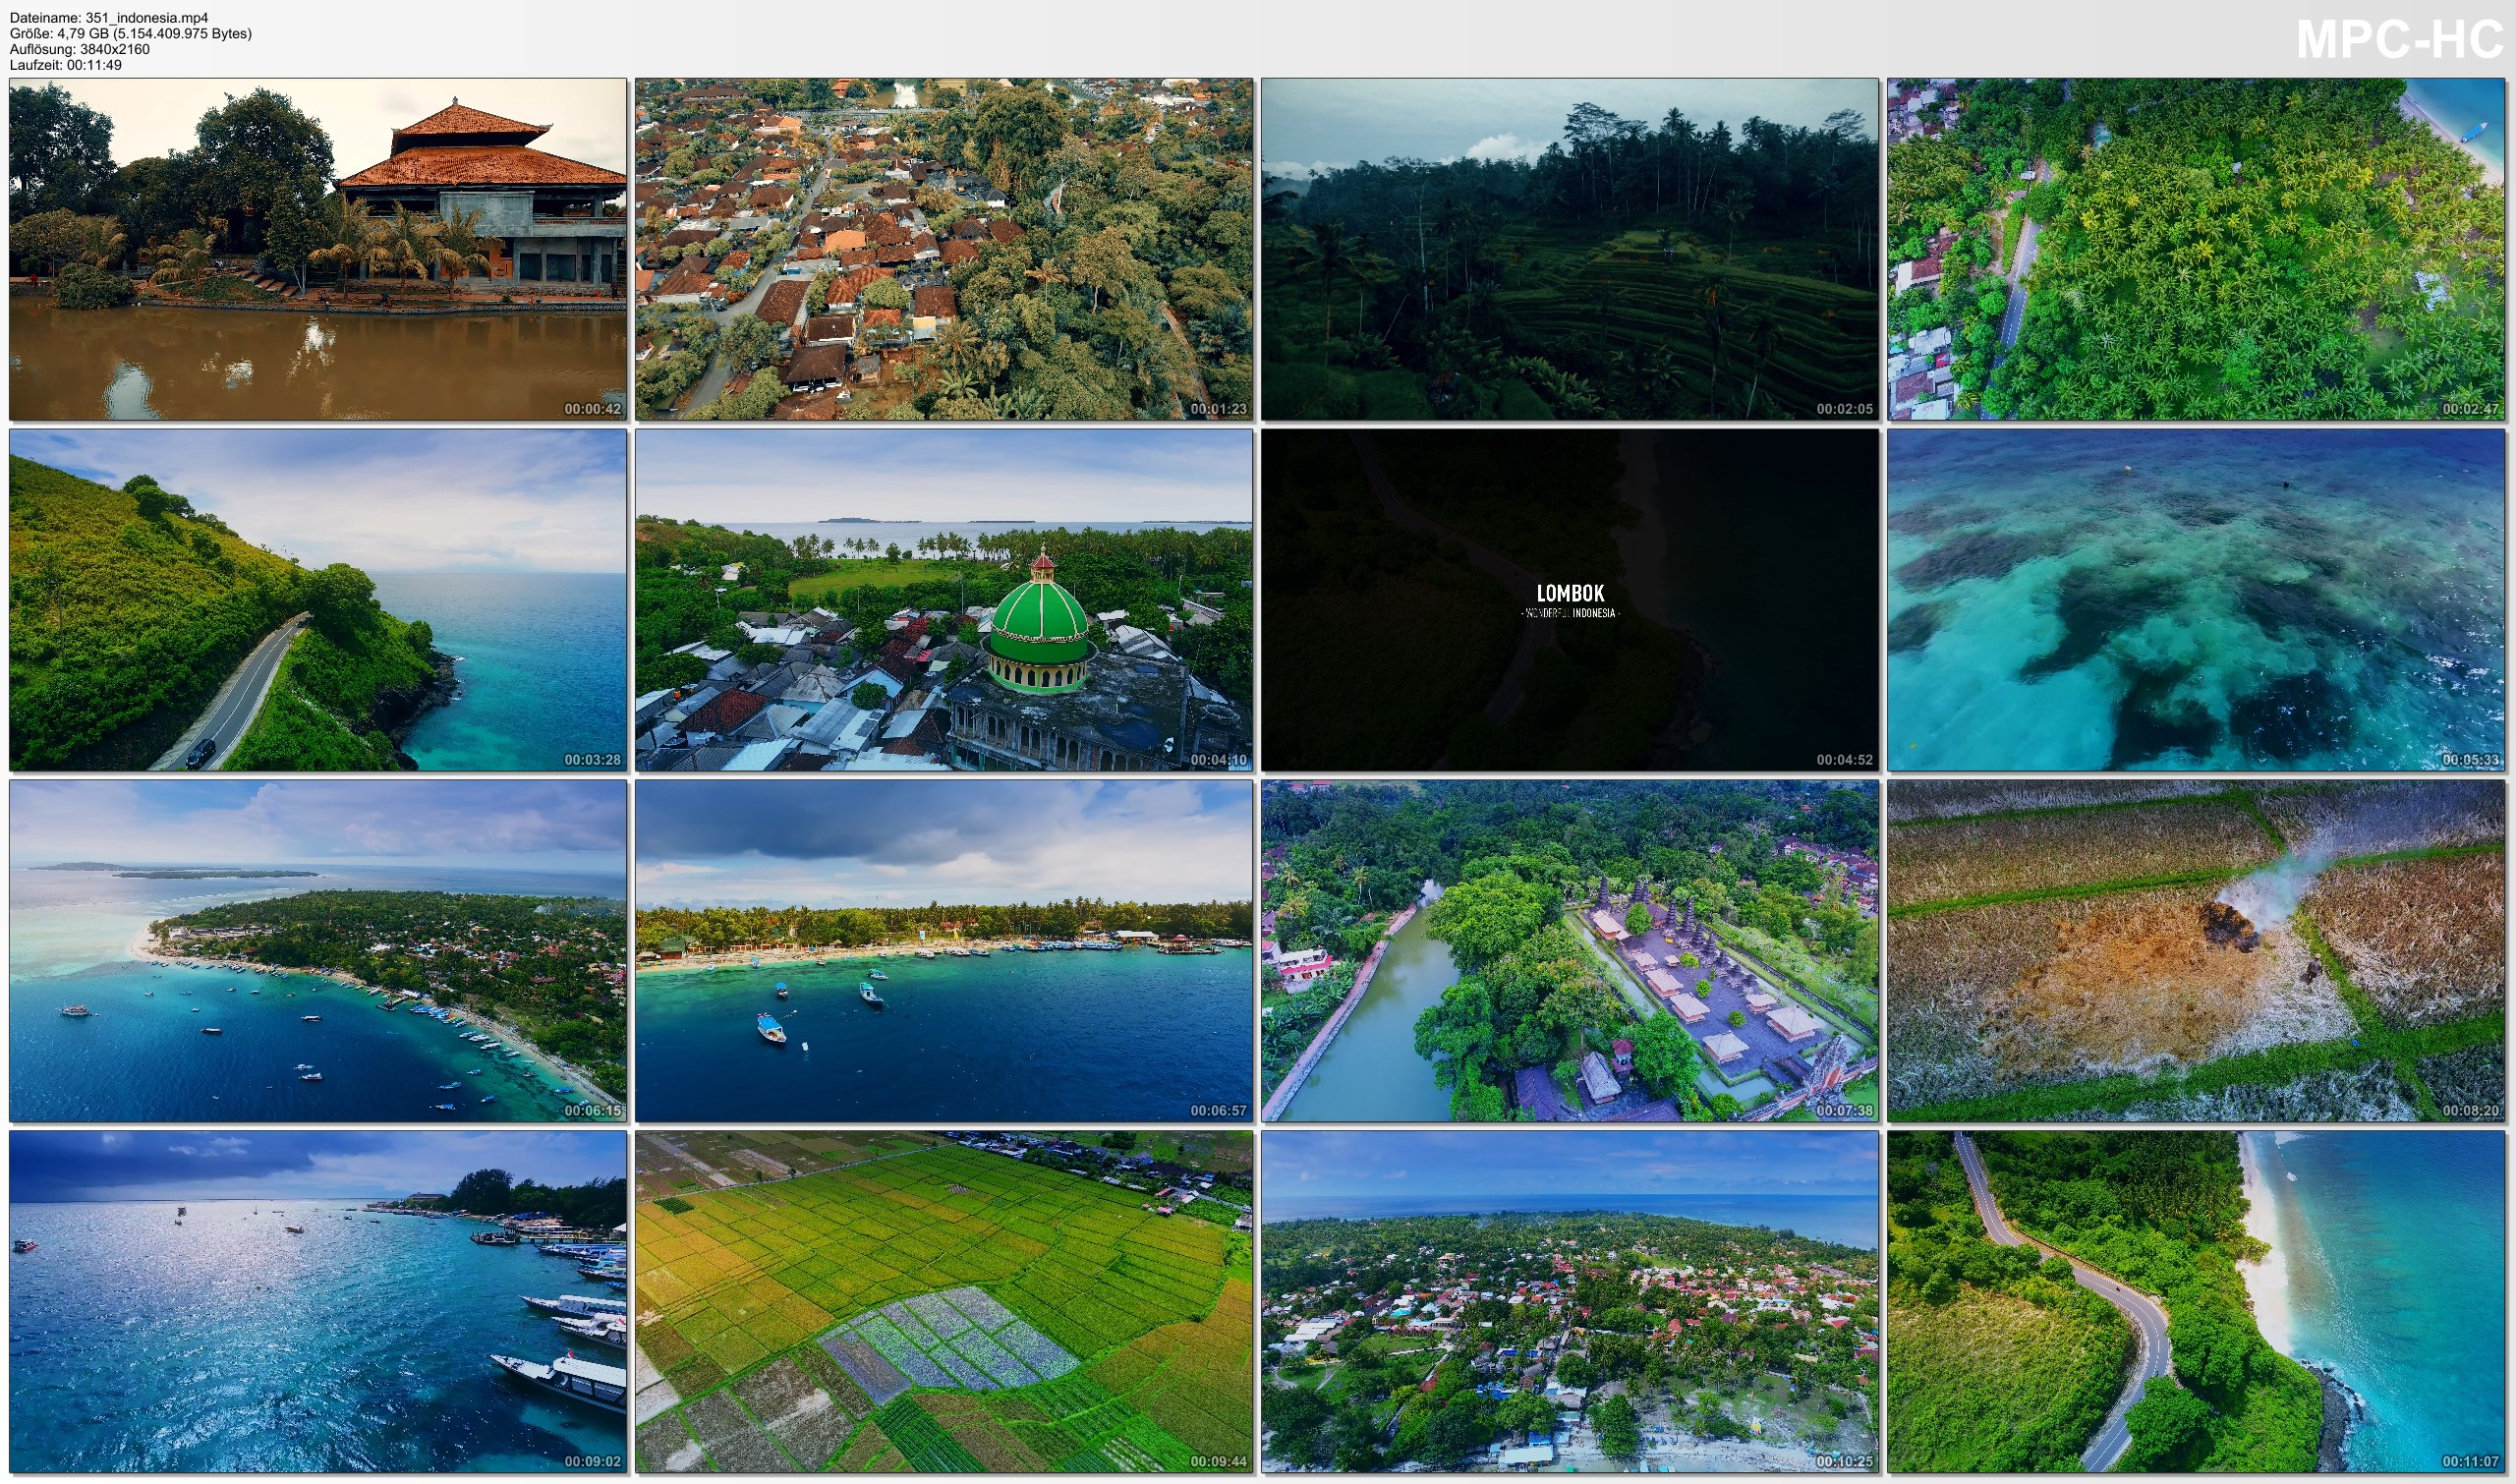 Drone Pictures from Video 【4K】Drone Footage | The Beauty of Indonesia in 12 Minutes 2019 | Cinematic Aerial Bali Lombok Gilis